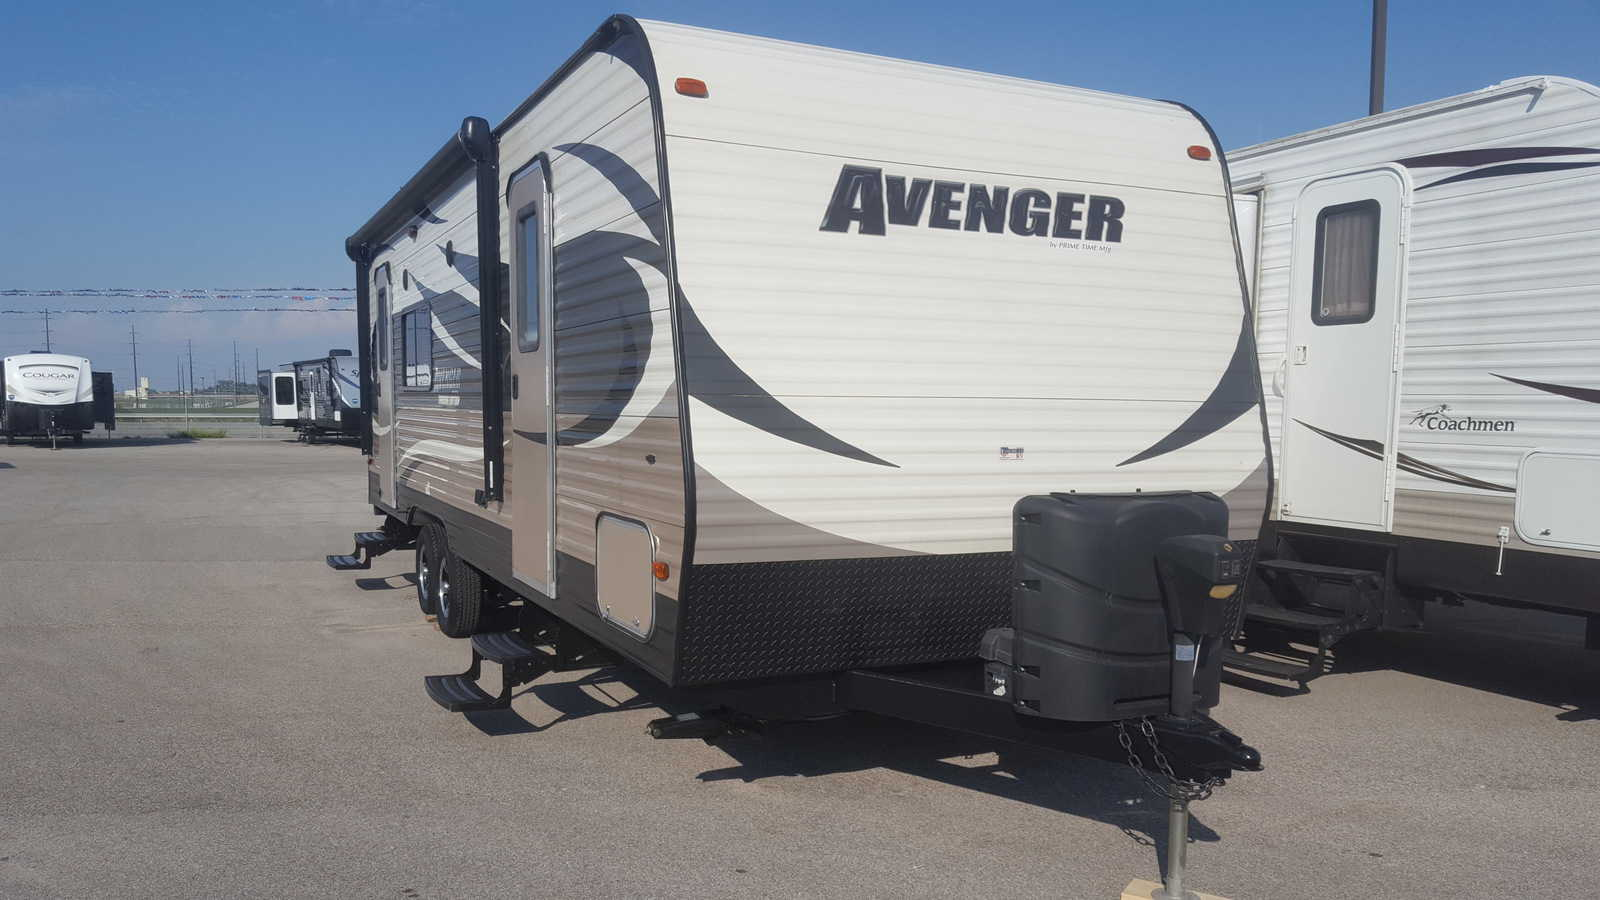 USED 2015 Prime Time AVENGER 25RL - American RV